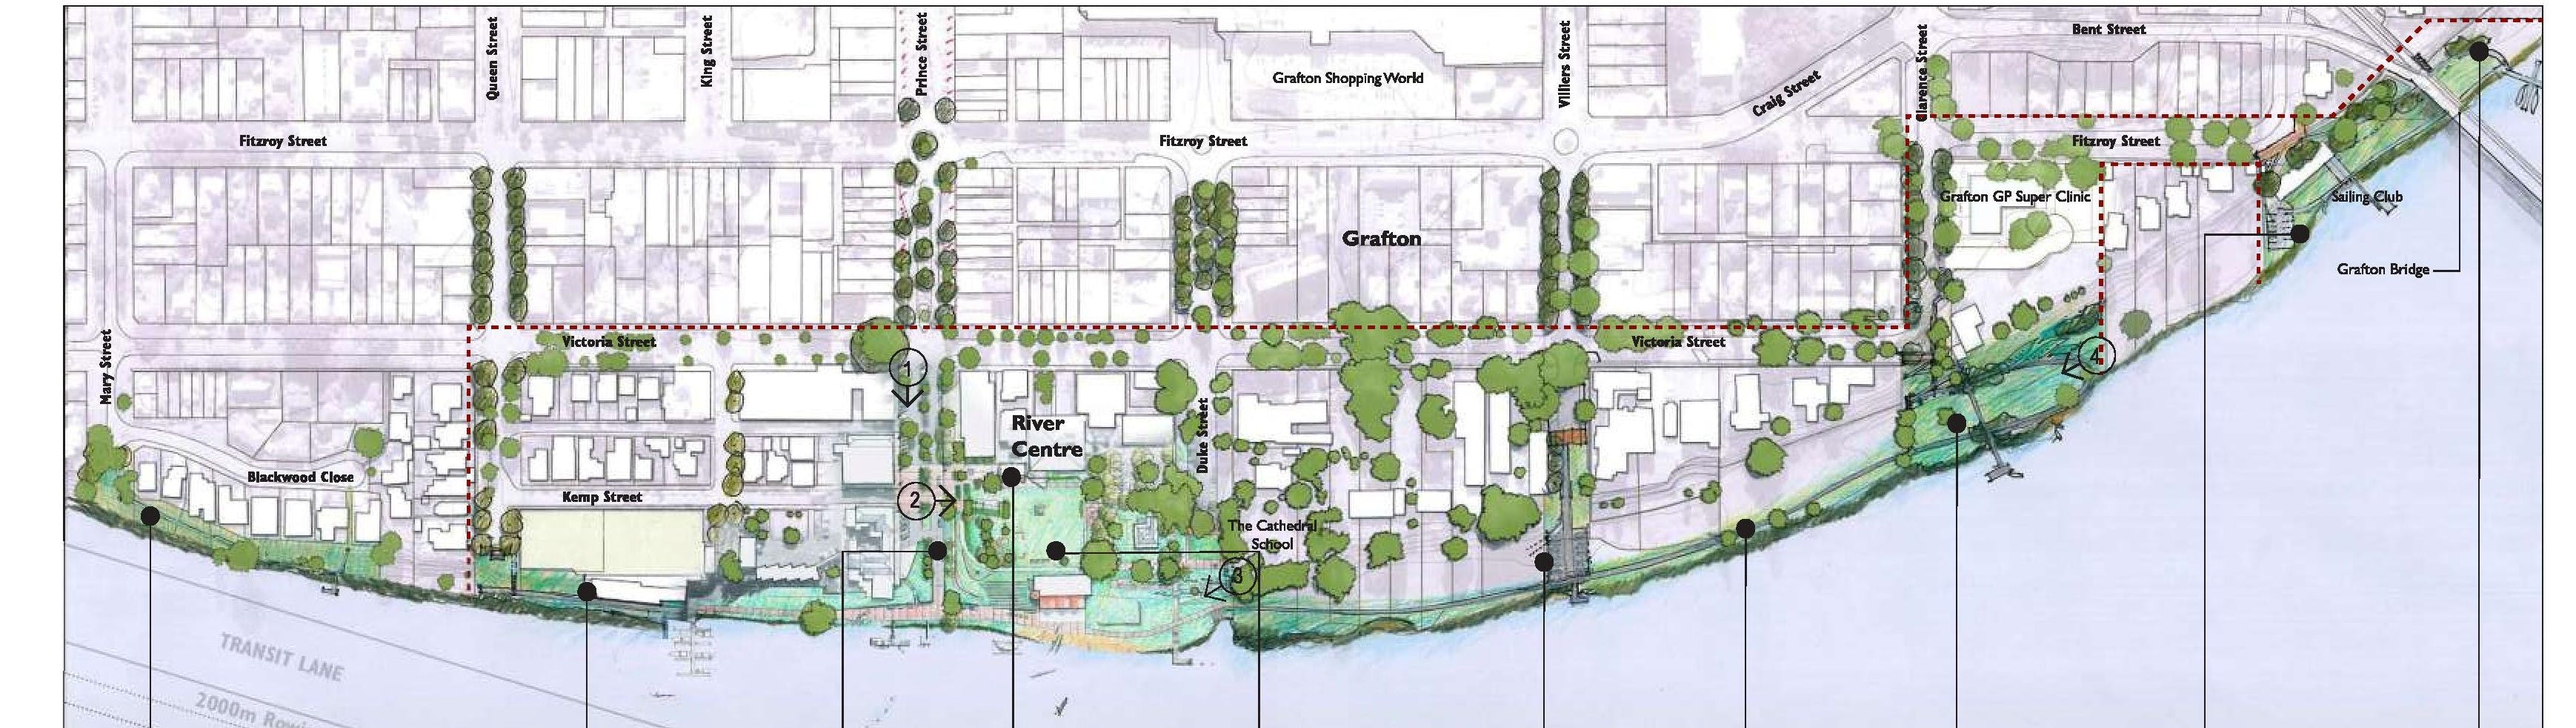 Grafton Waterfront Project